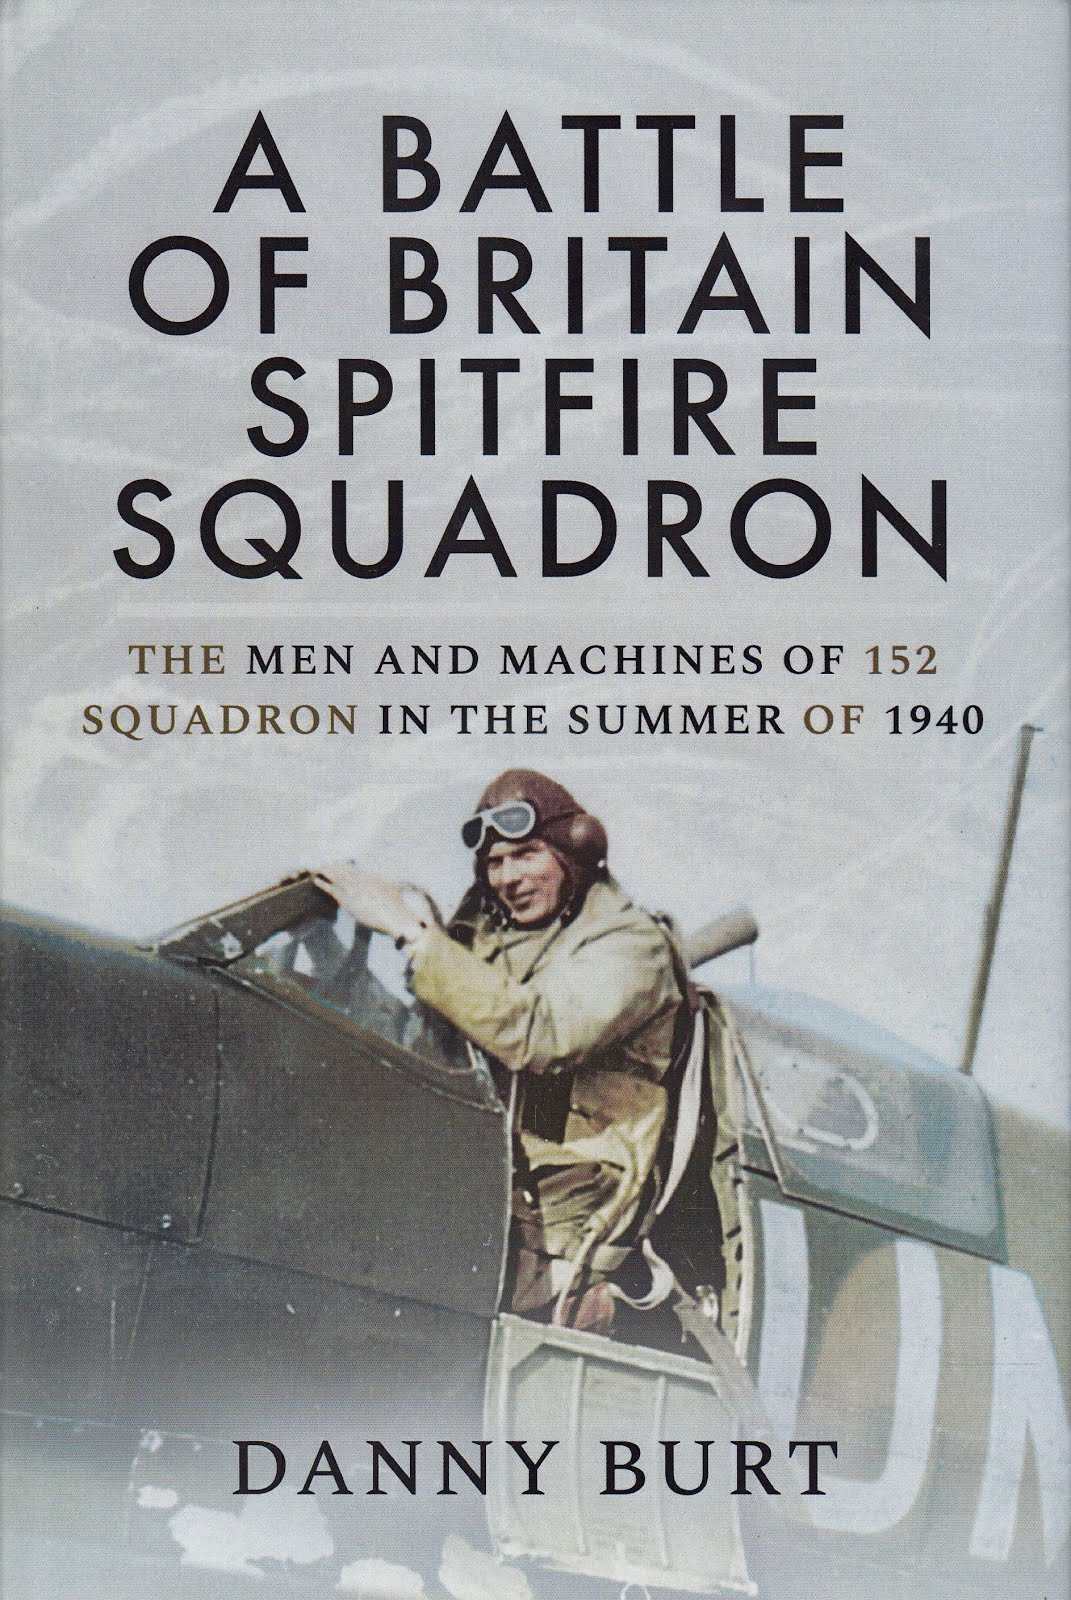 A Battle of Britain Spitfire Squadron